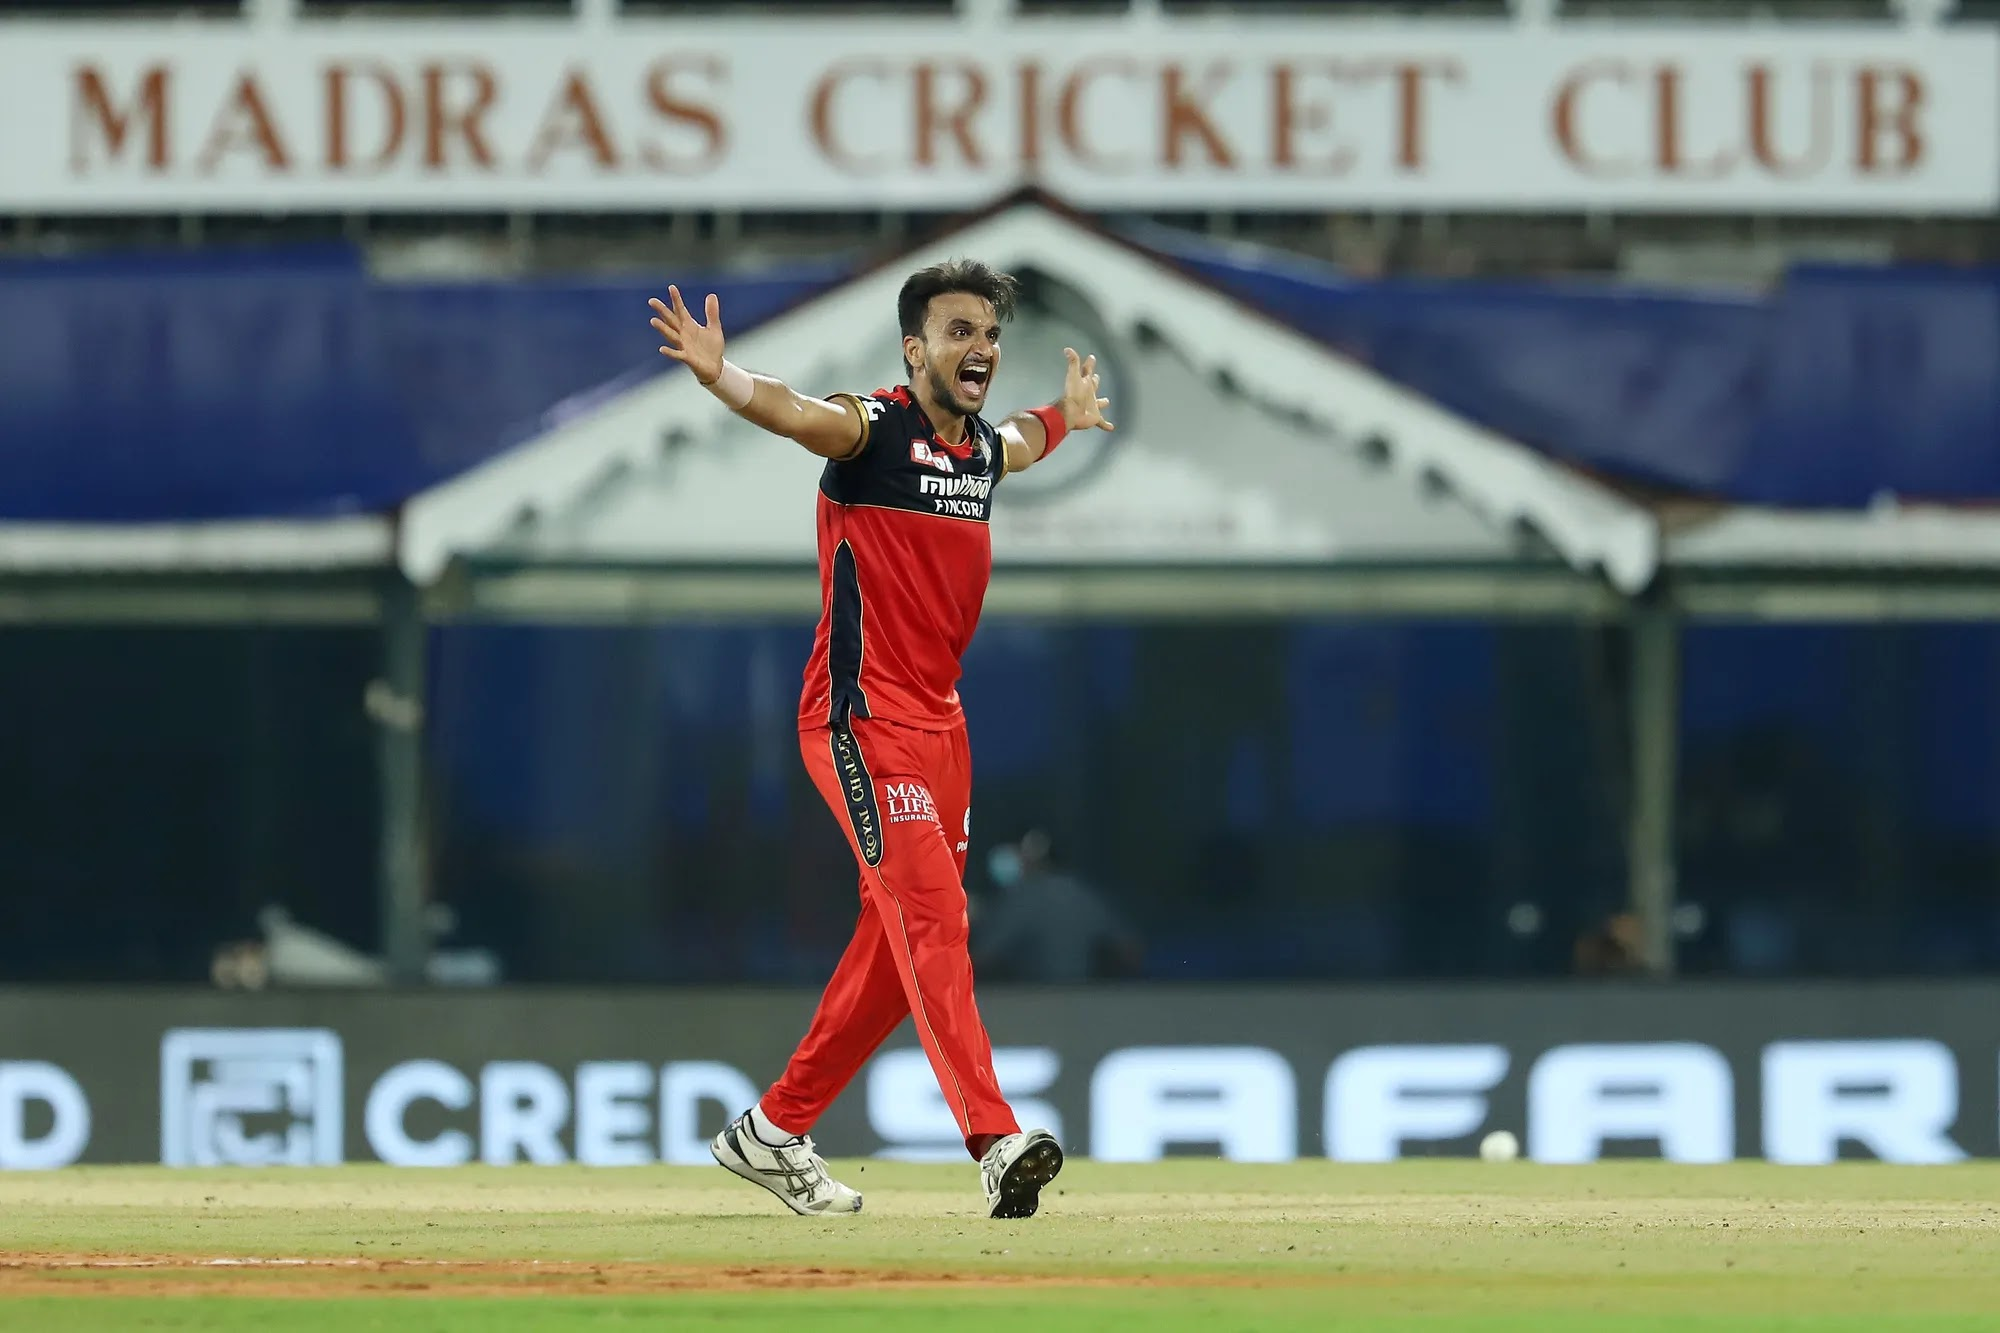 IPL 2021 - First Match MI VS RCB - RCB Won By 2 Wickets, Full Match Report